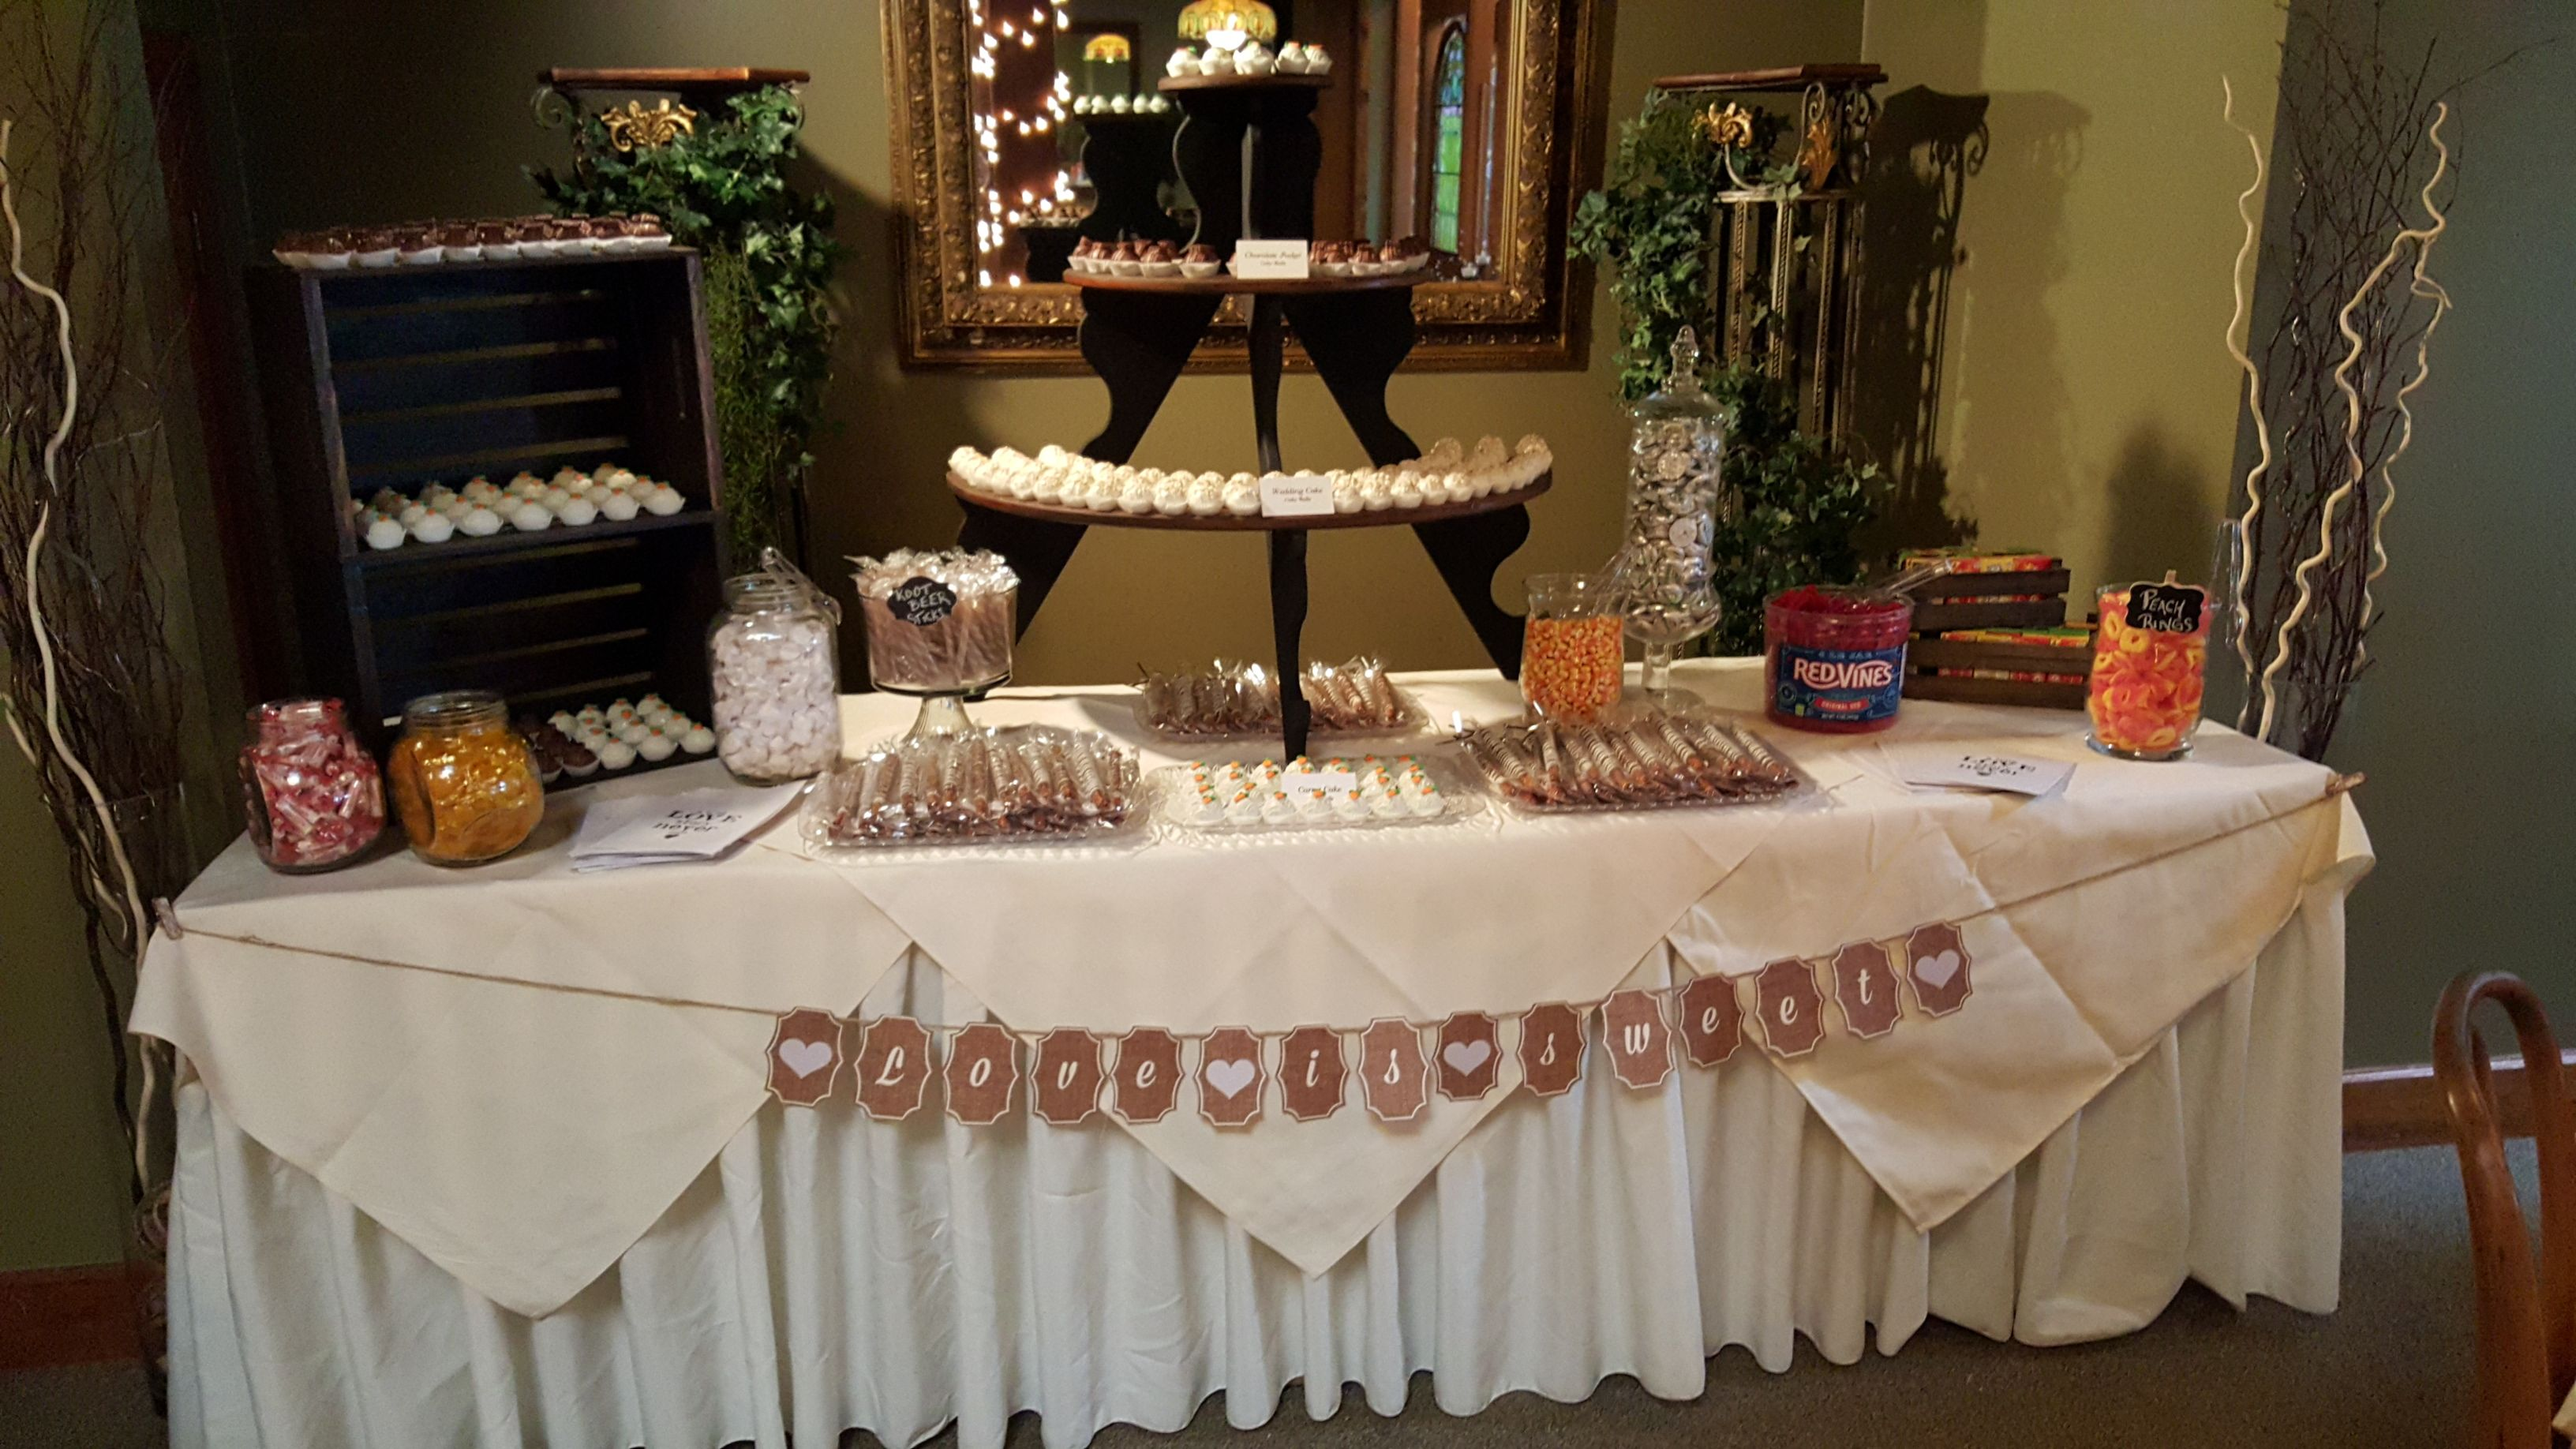 This bride and groom opted out of the traditional wedding cake and